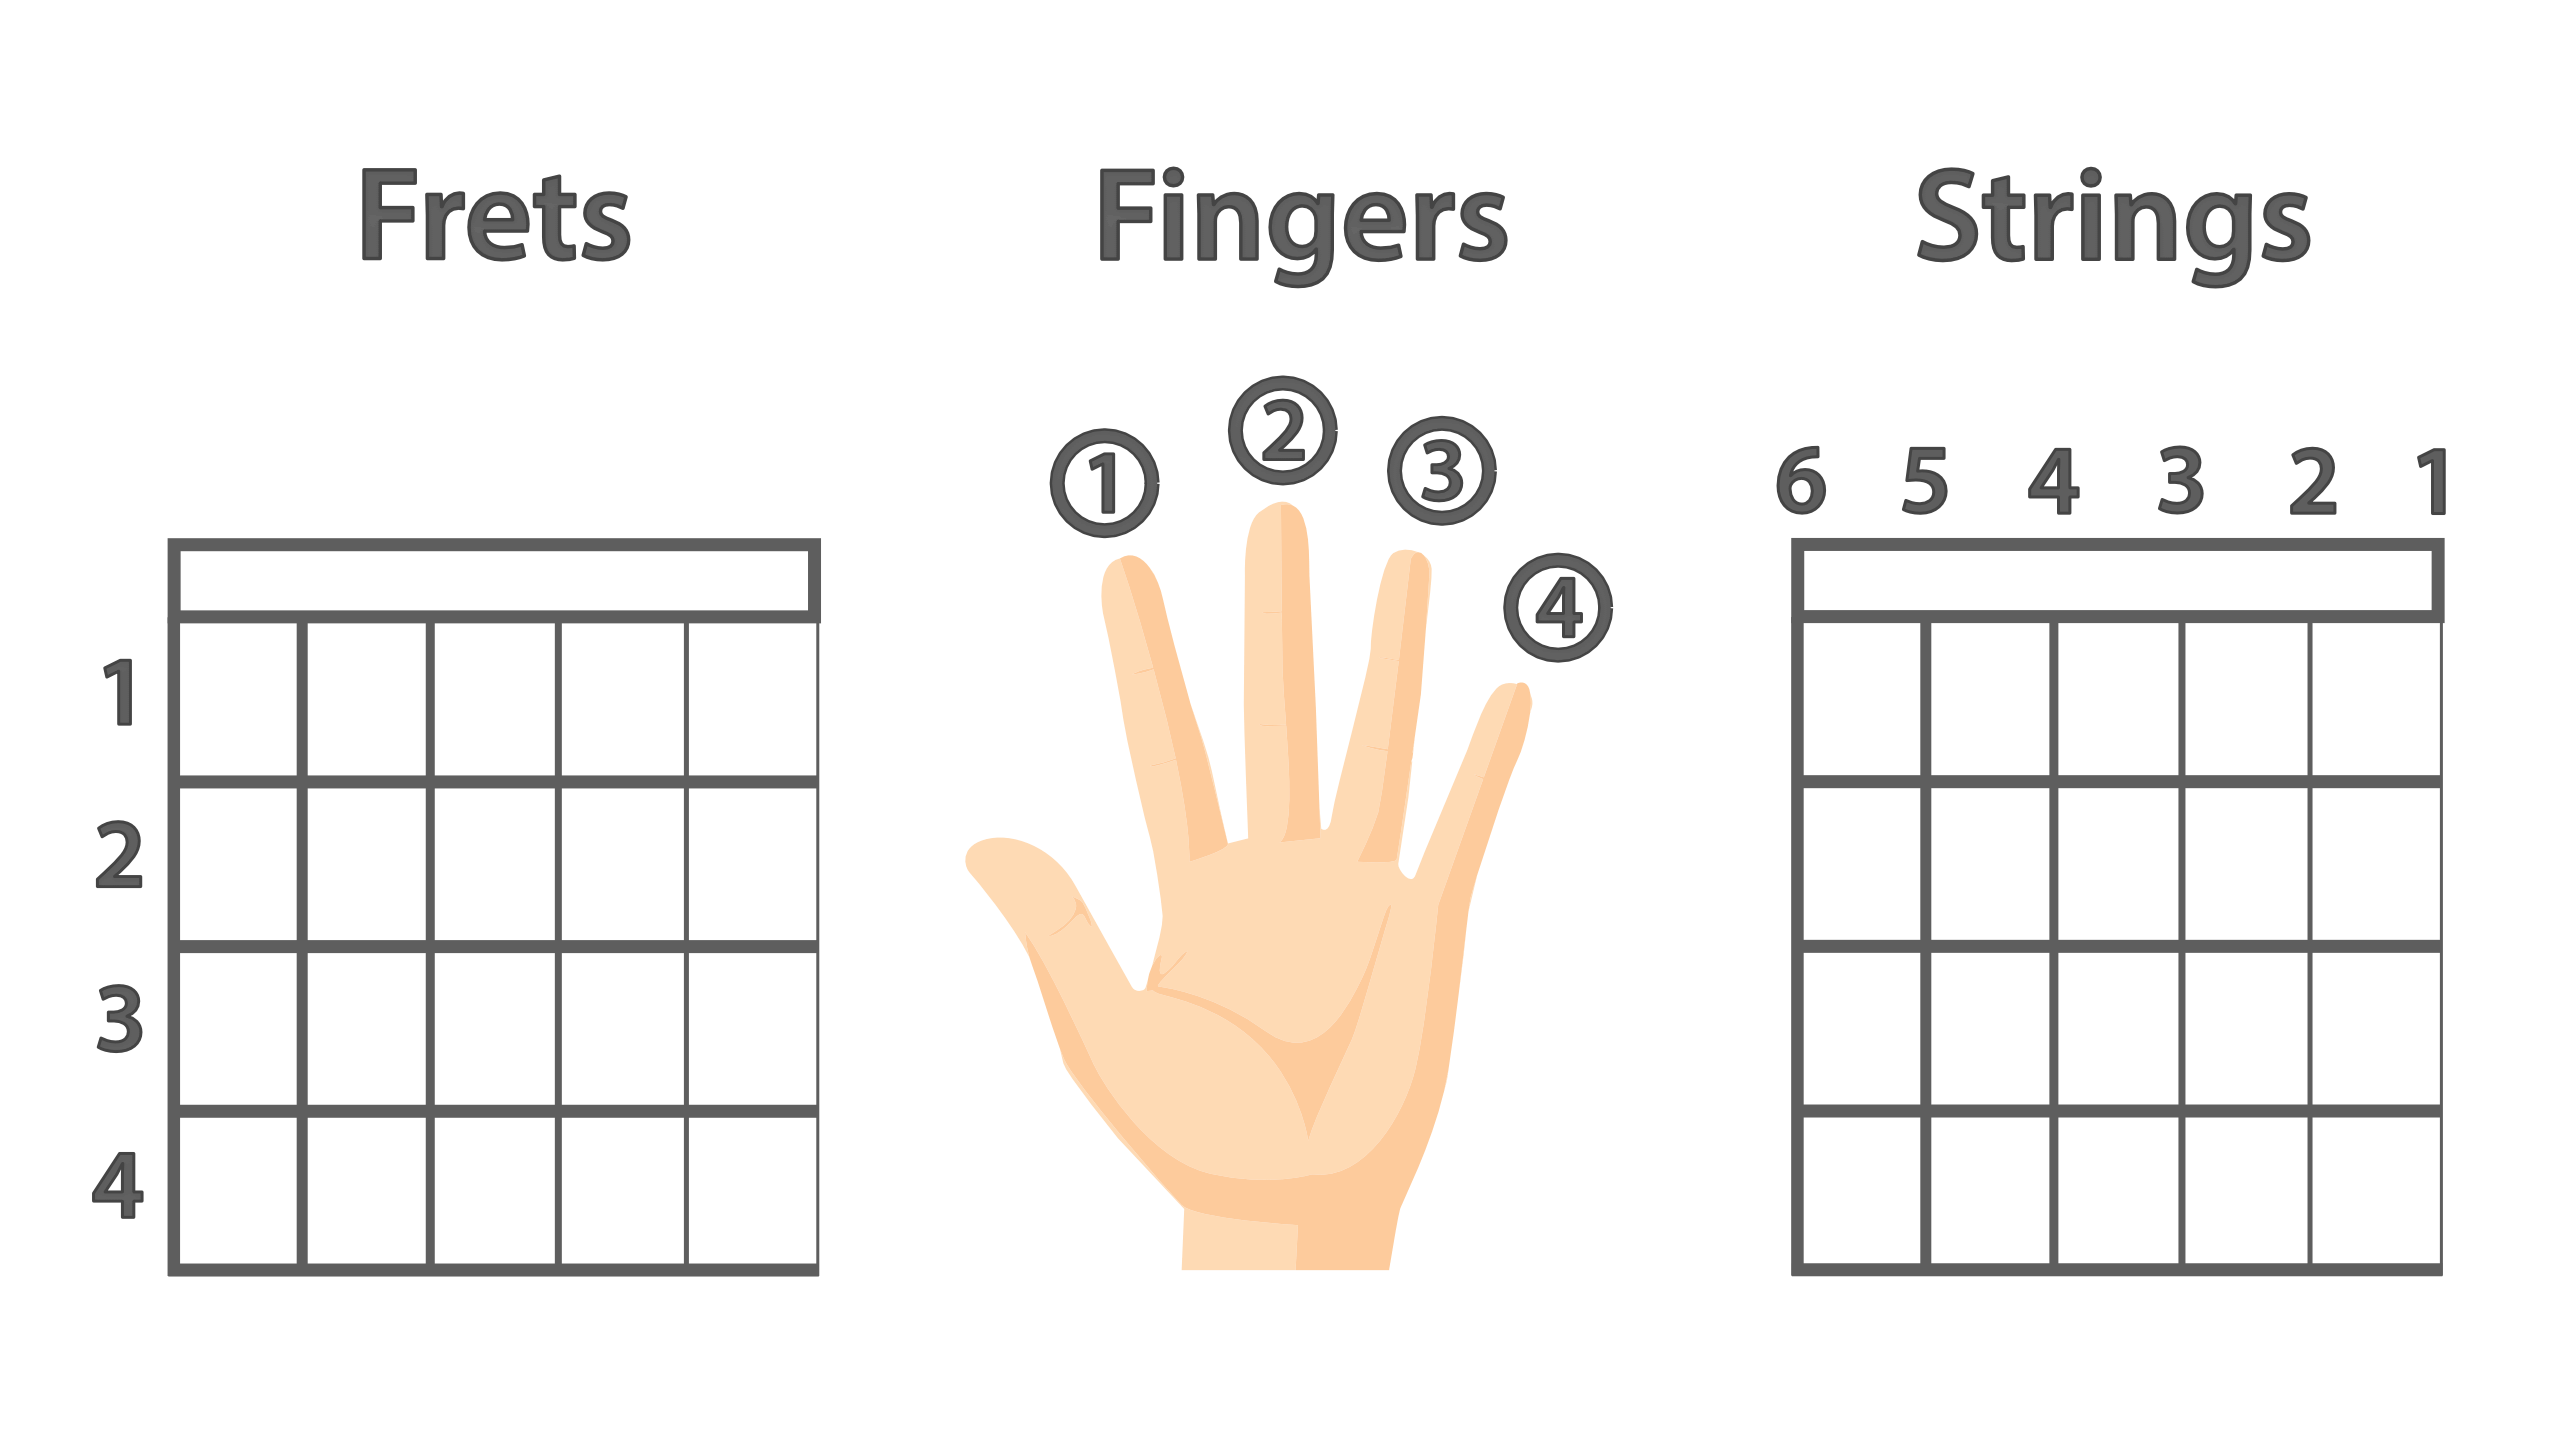 Fingers, Frets & Strings